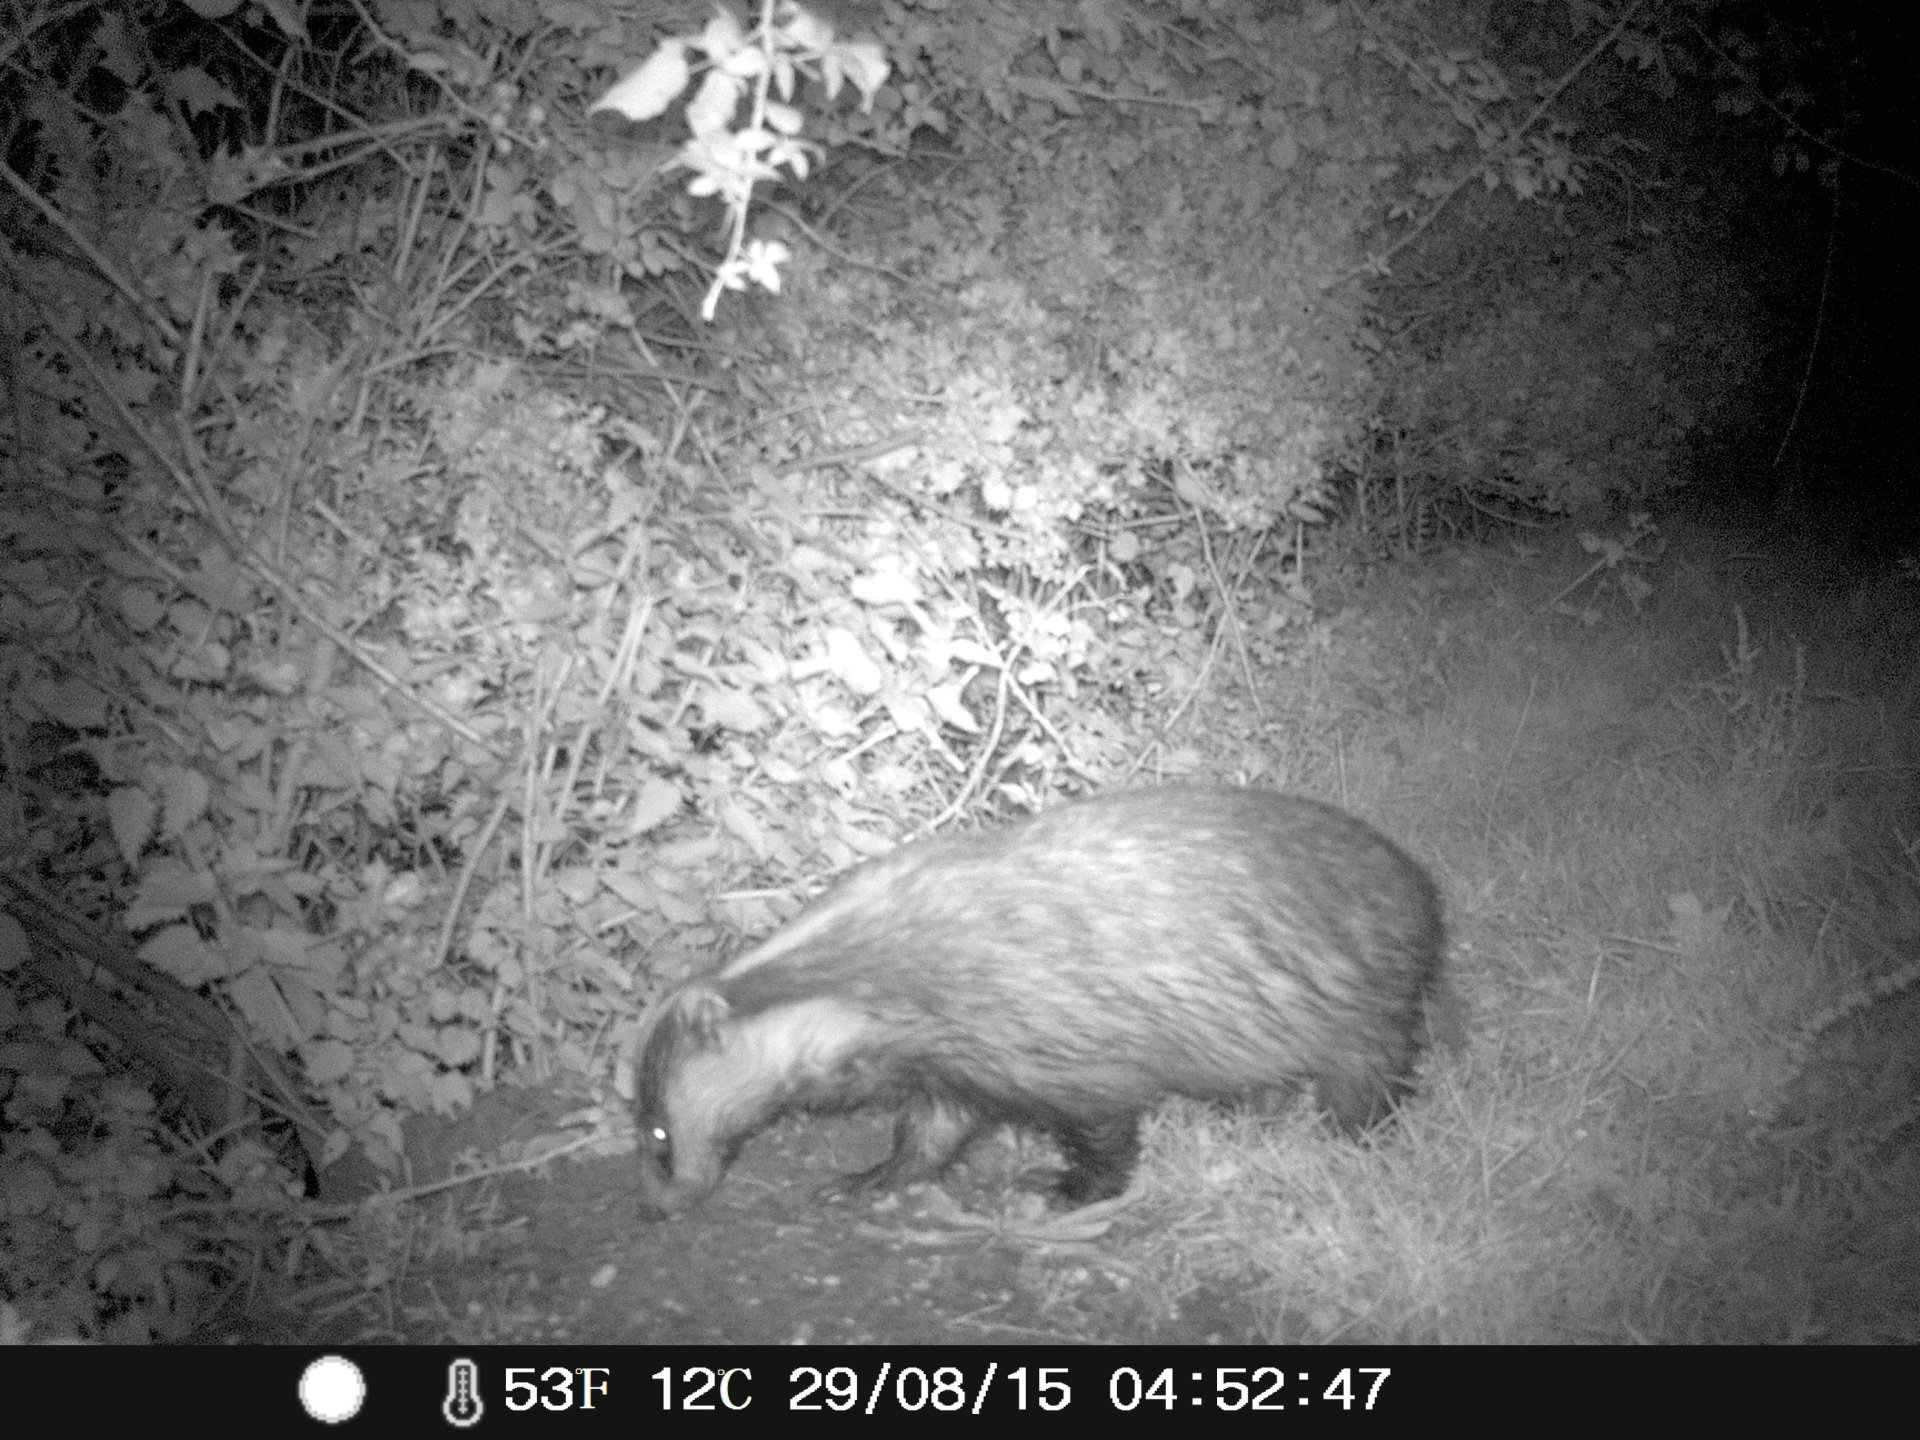 Badger at night snapped with trail camera